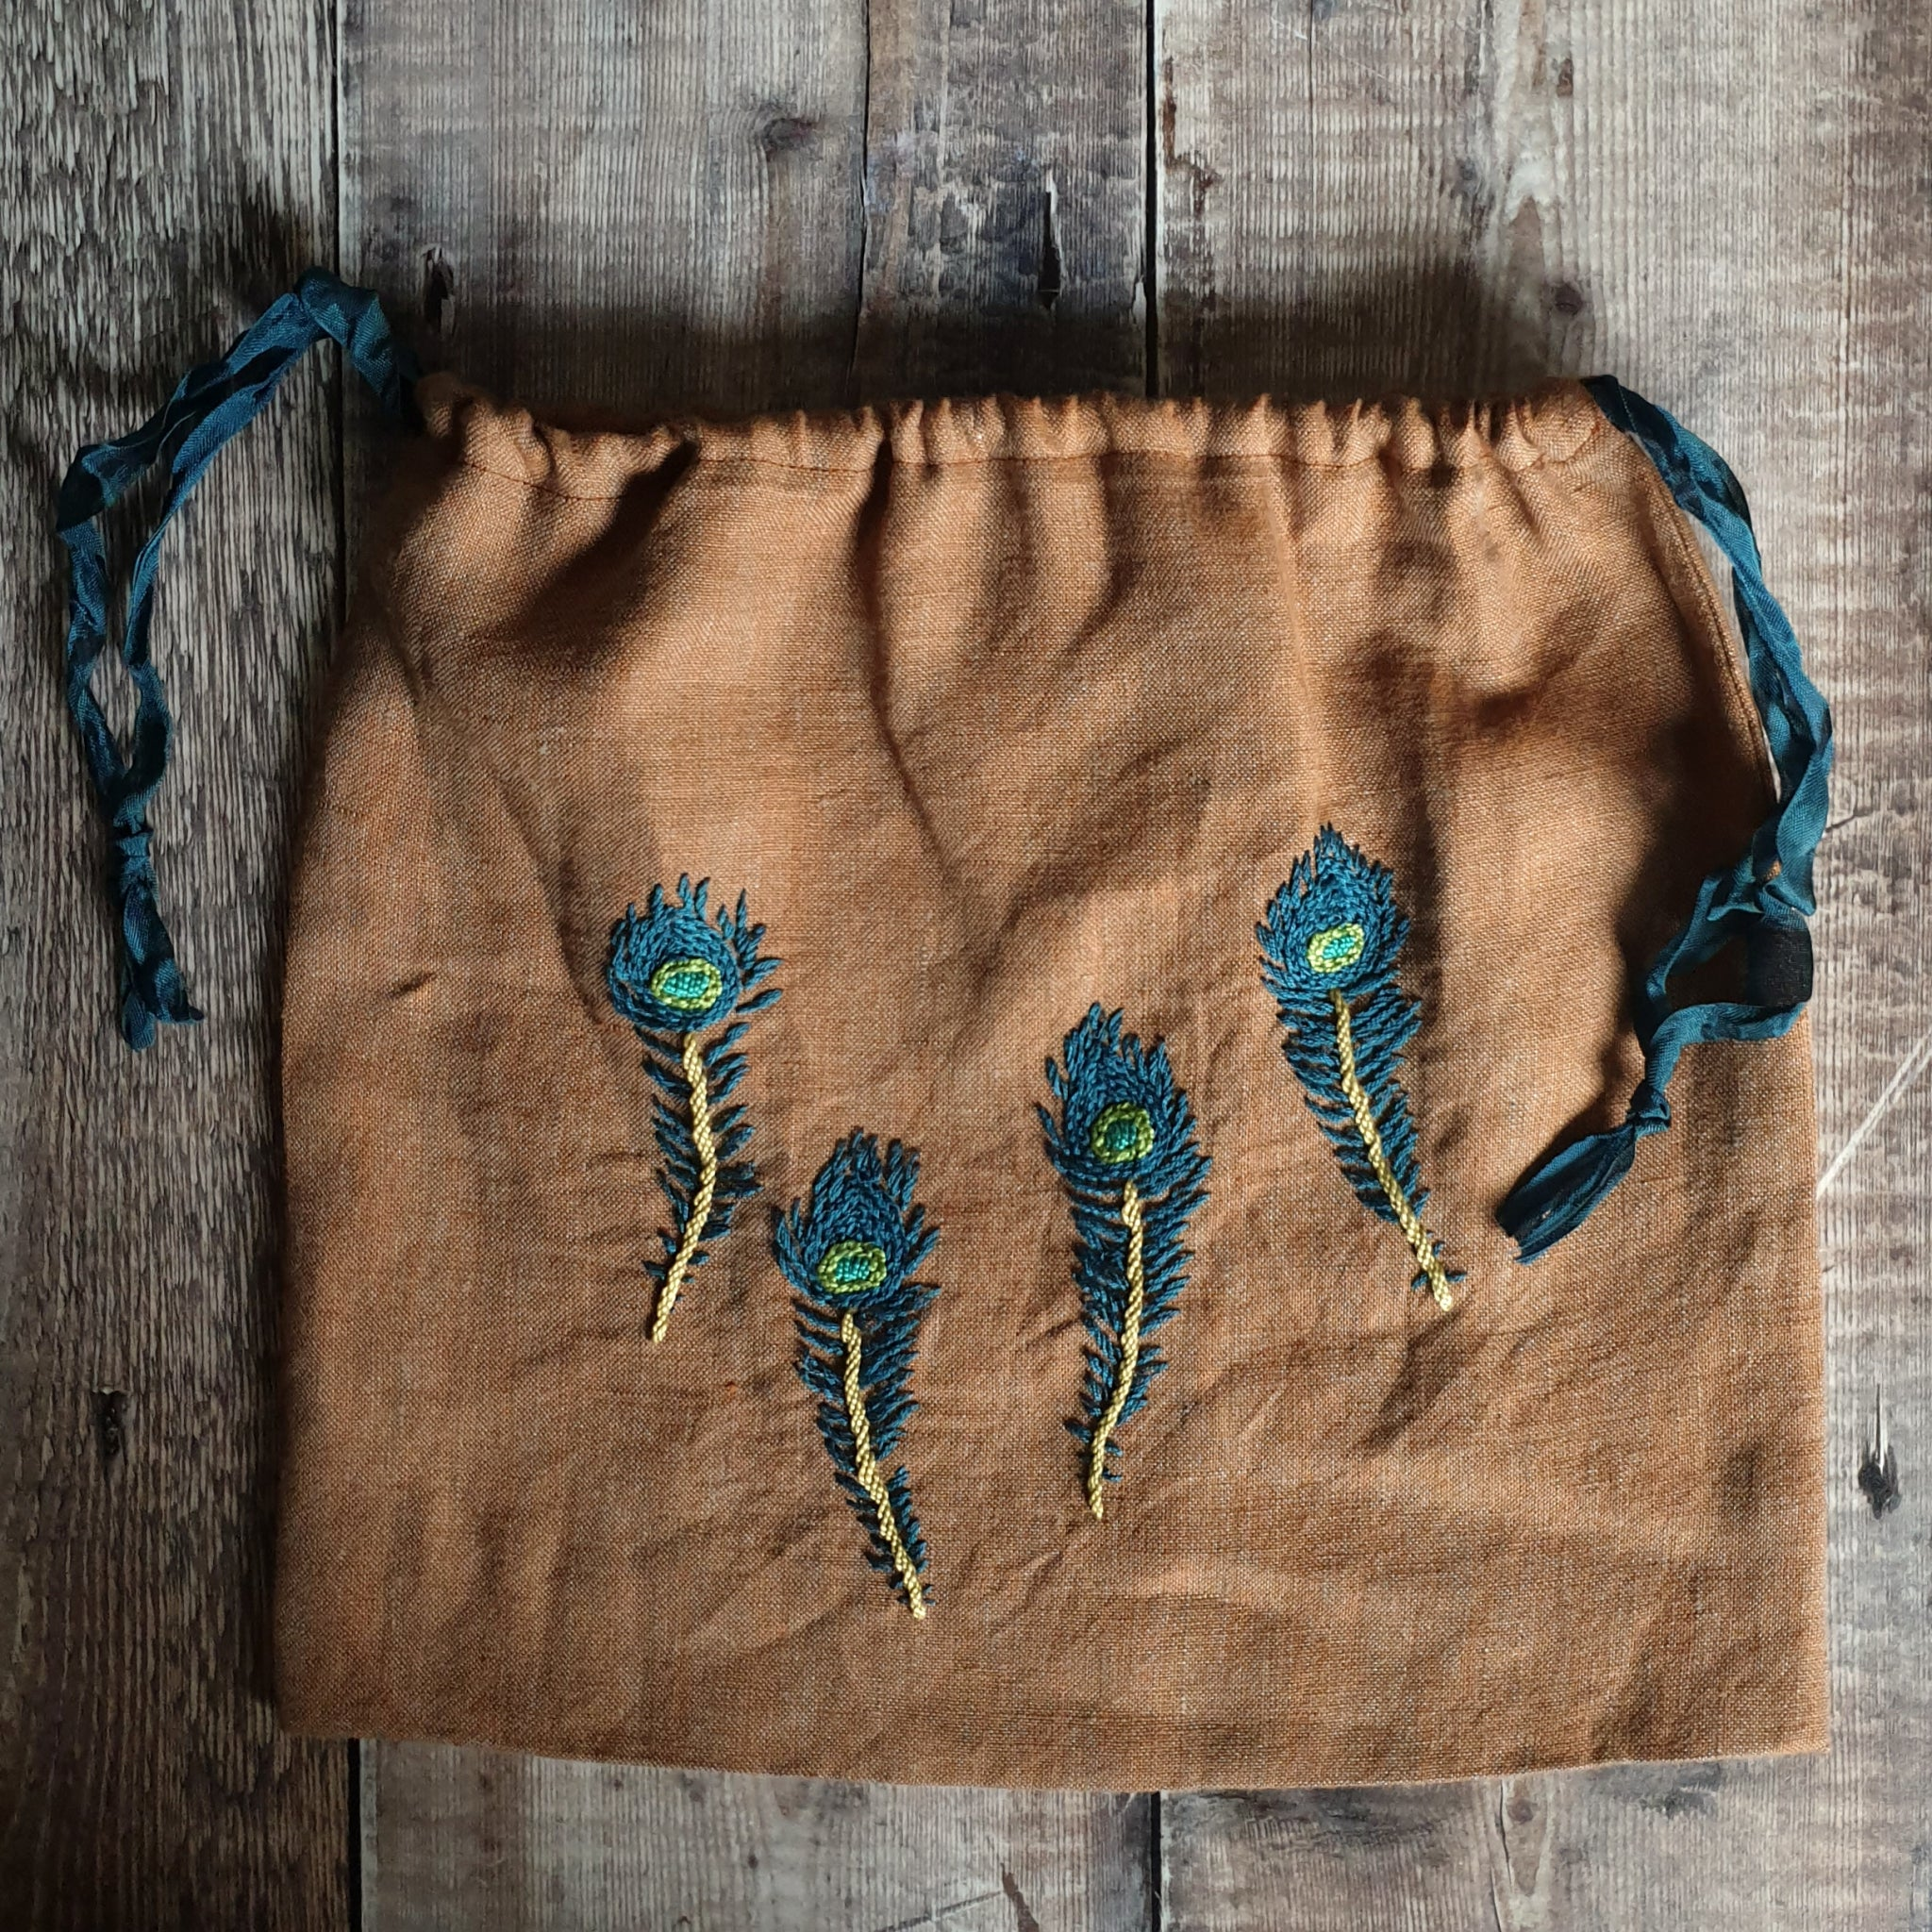 Hand Embroidered Linen Drawstring Bag - Peacock Feathers (In Stock, Ready to Ship)